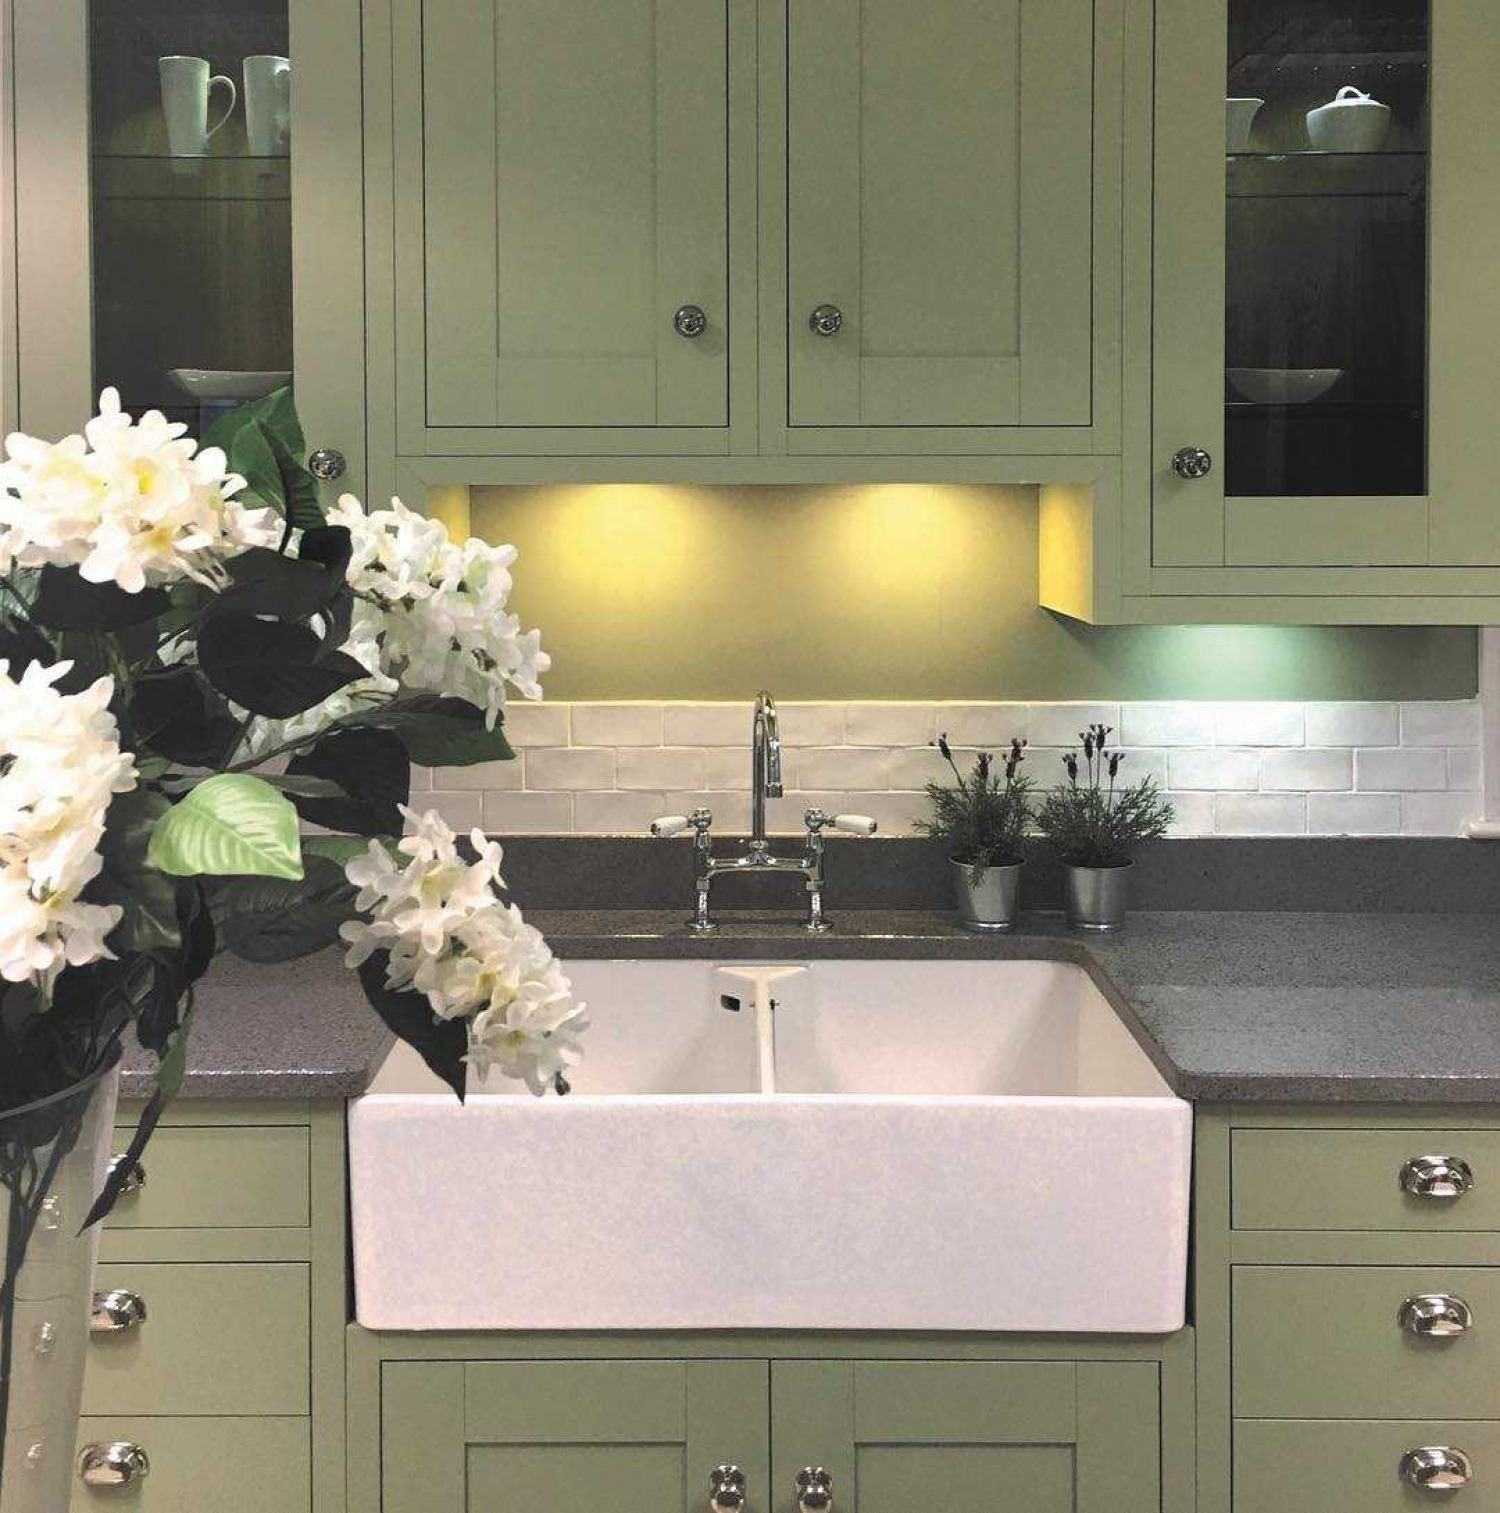 Olive Kitchen Ideas Green Cabinets With Flowers